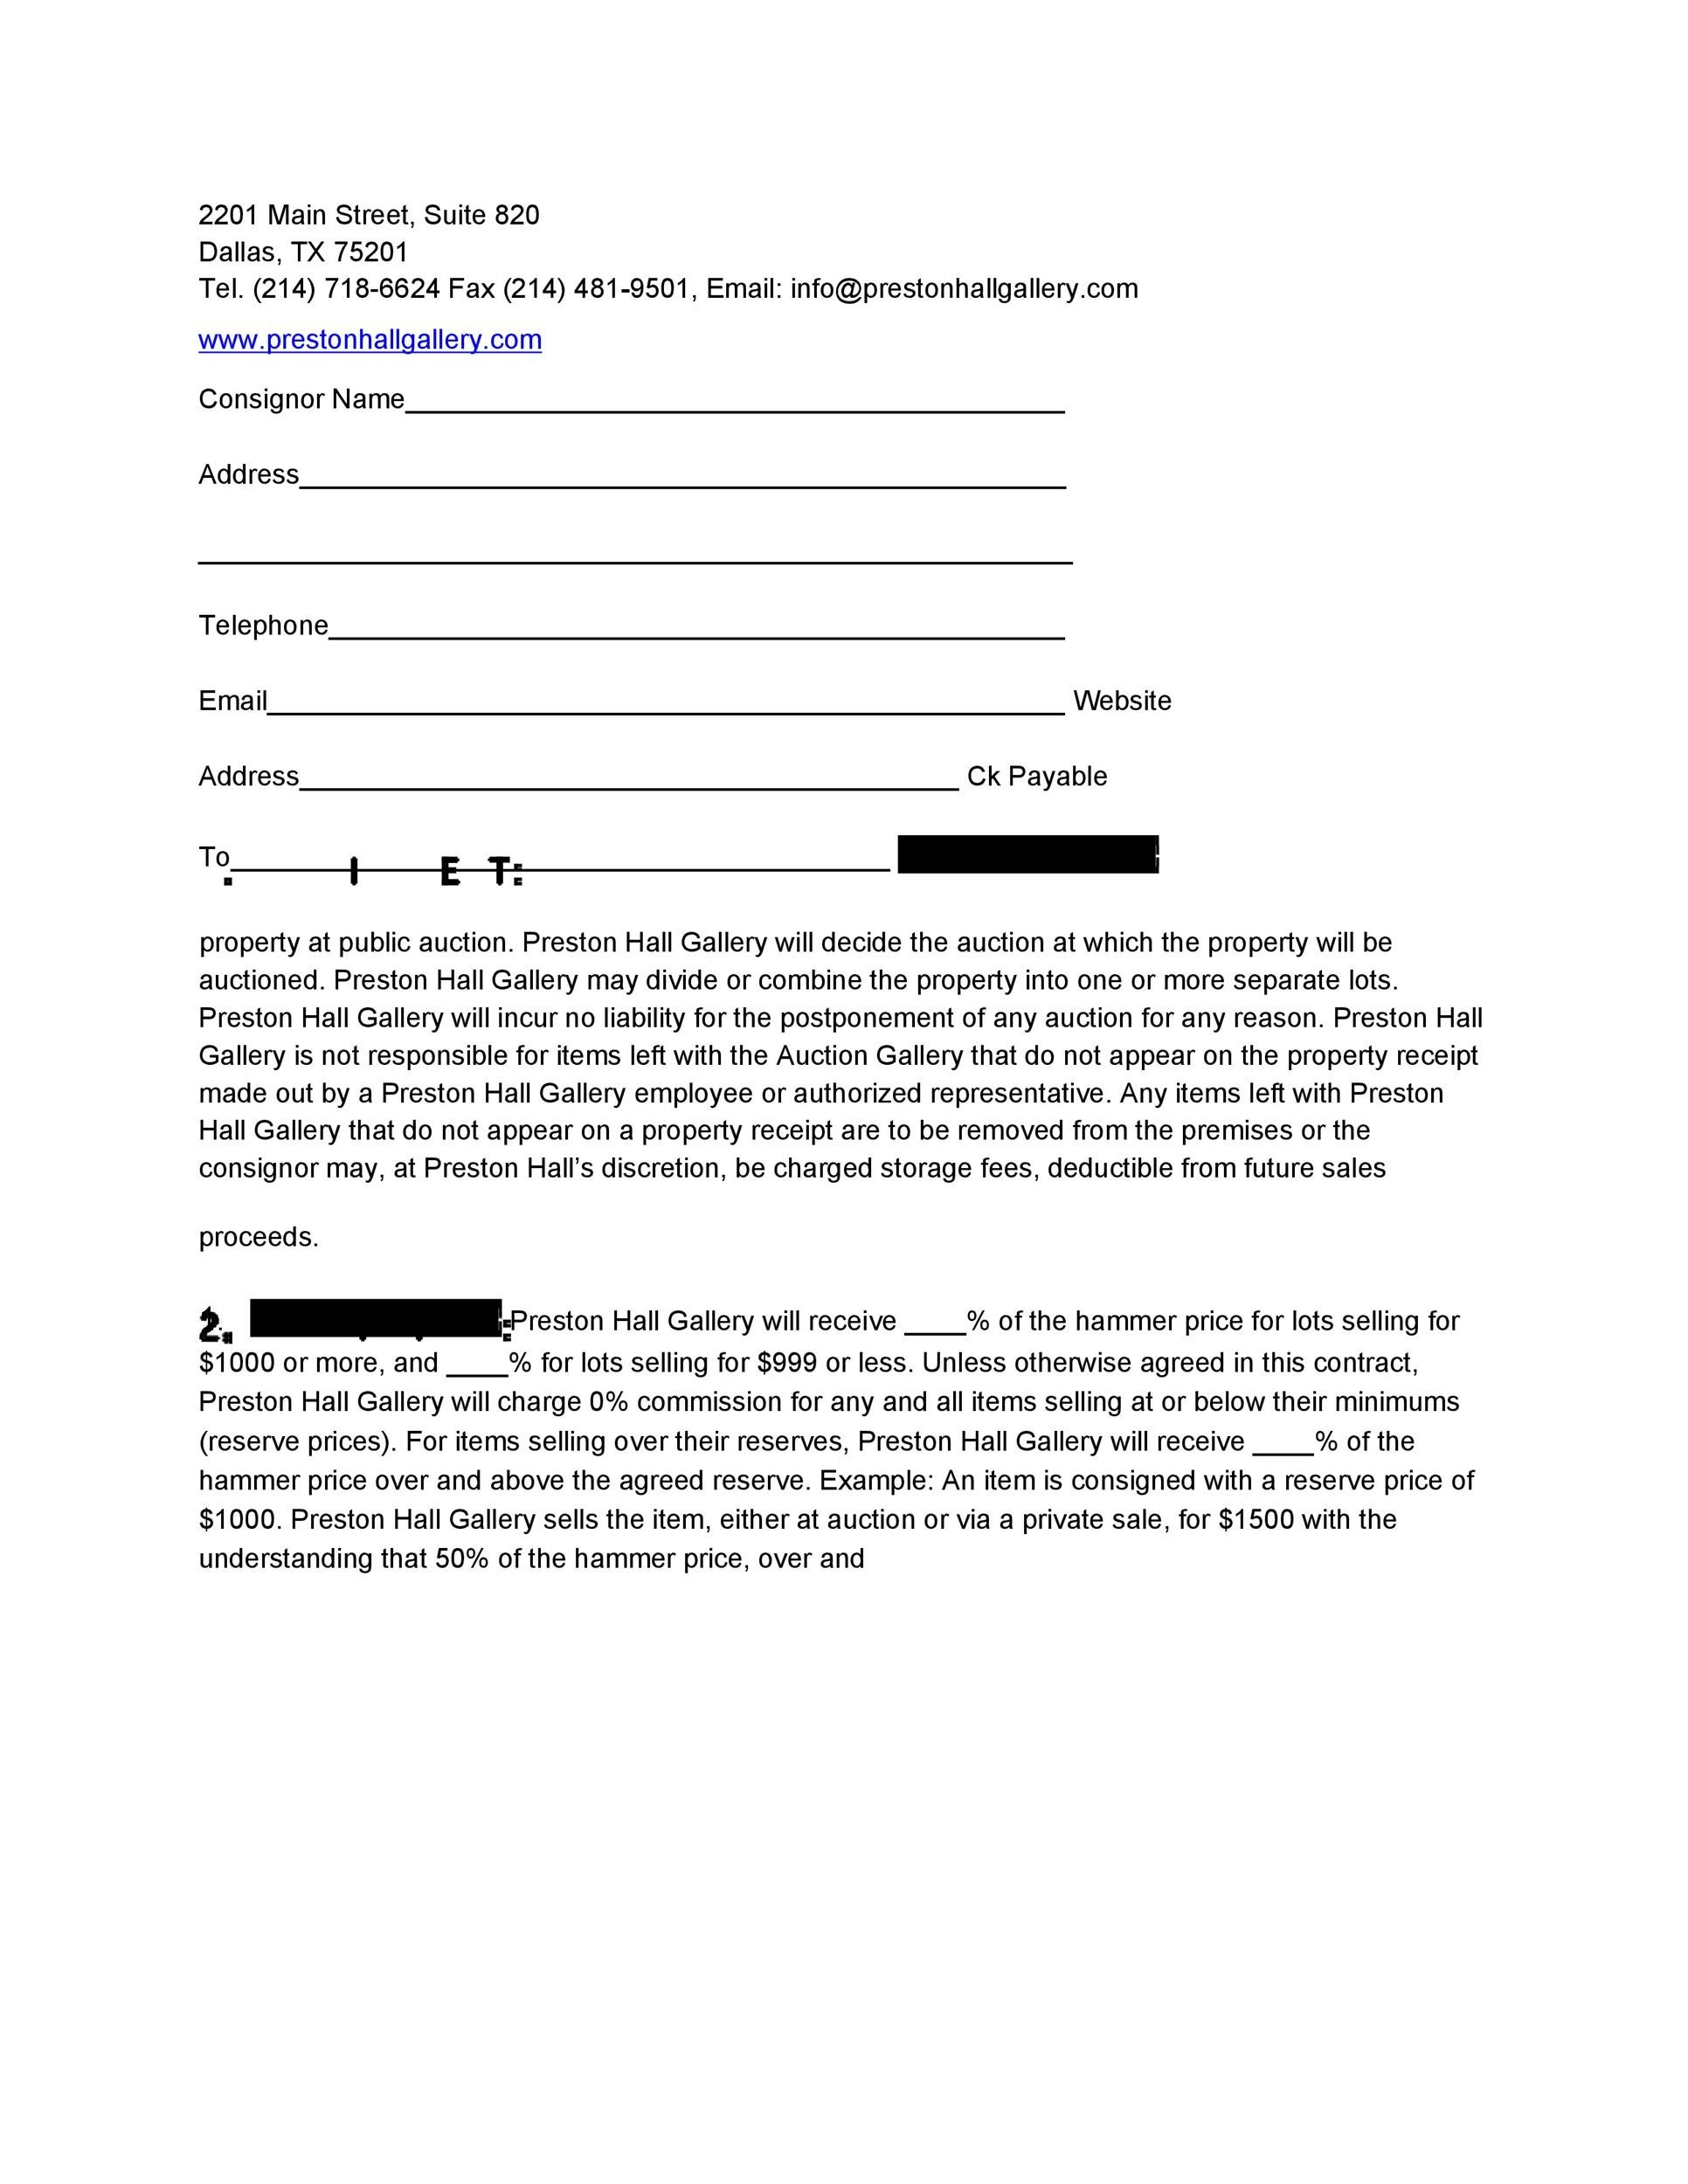 40 Best Consignment Agreement Templates Forms ᐅ Template Lab